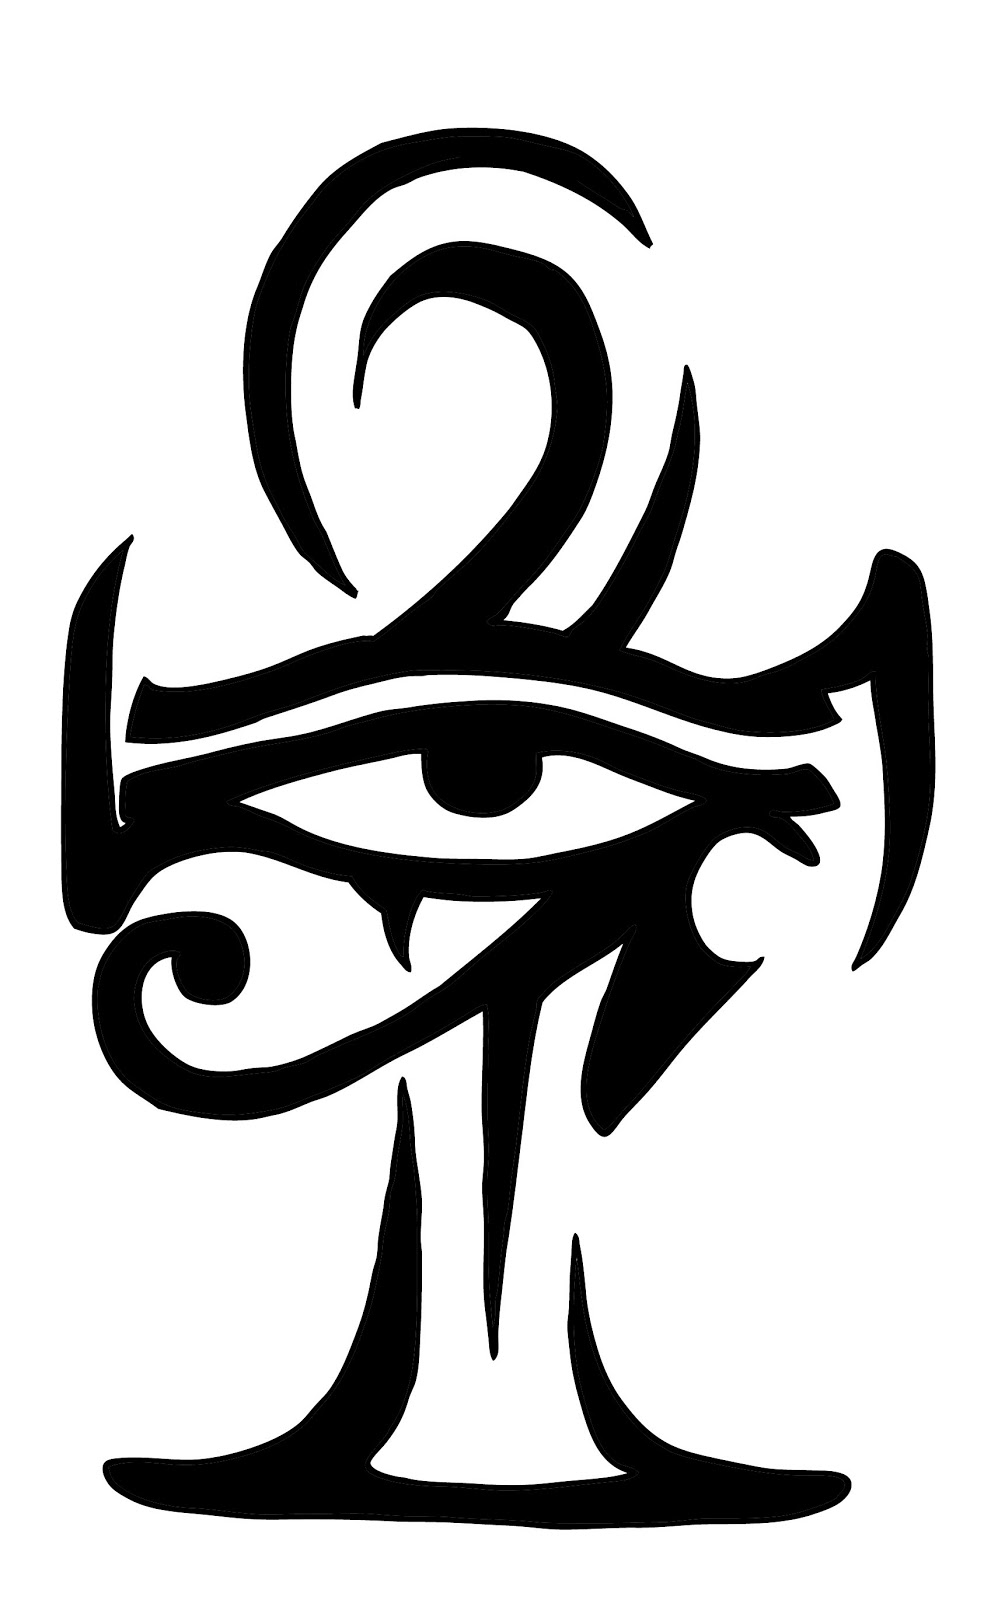 eye of horus x ankh tattoos pinterest horusauge augen und t towierungen. Black Bedroom Furniture Sets. Home Design Ideas